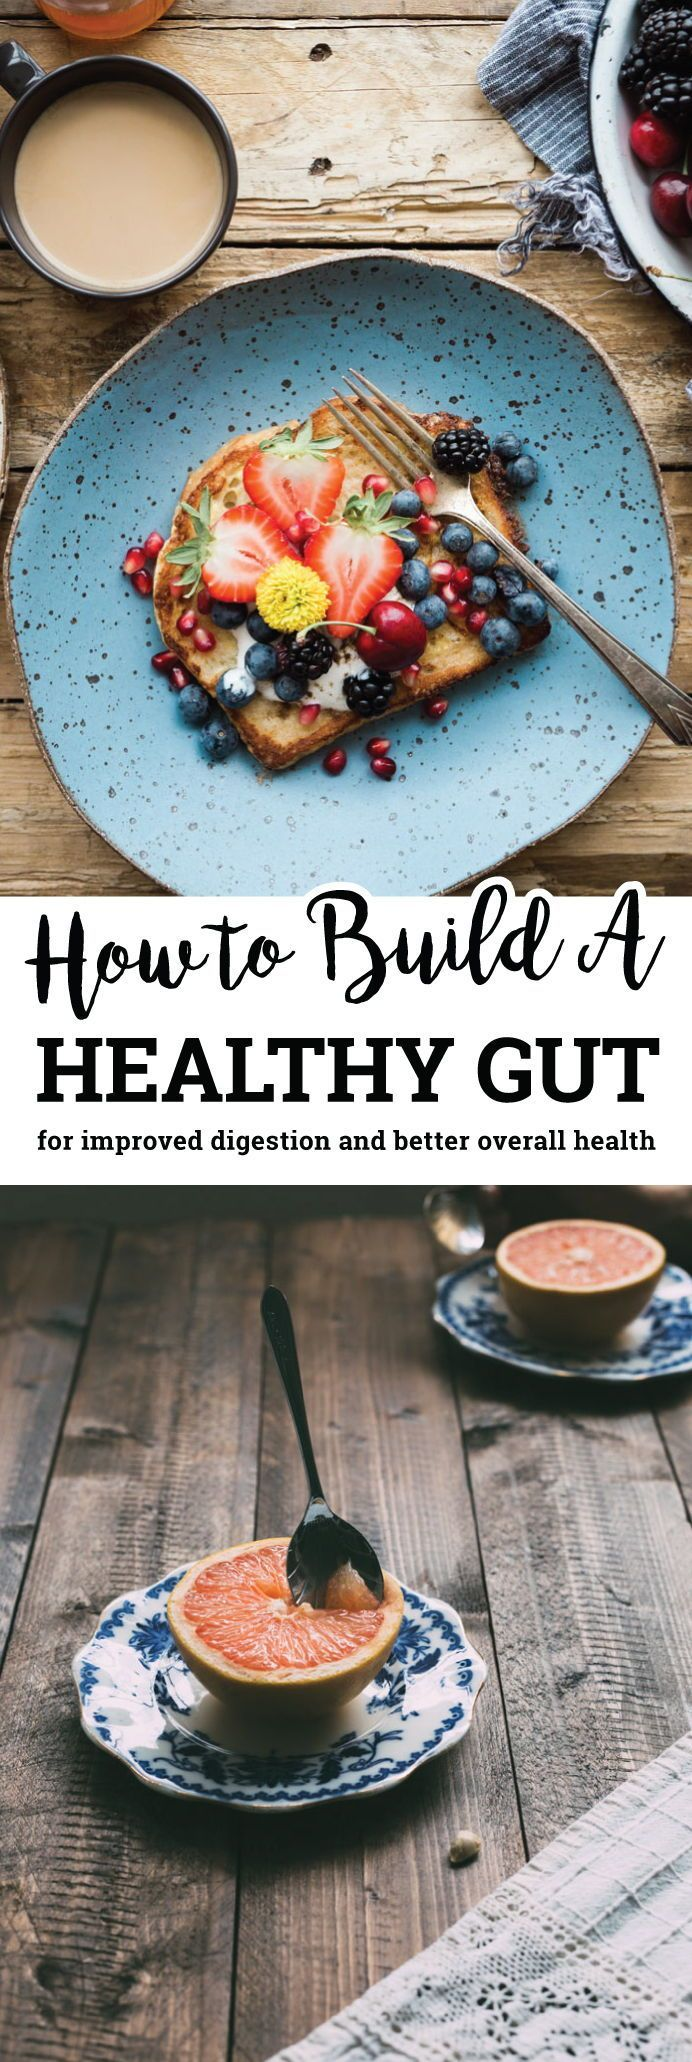 to Build a Healthy Gut for Better Digestion and Health Learn how to build a healthy gut for improved digestion and overall health. Discusses leaky gut, how to repair the gut, the best healthy gut foods and lifestyle habits to improve your gut health.Learn how to build a healthy gut for improved digestion and overall health. Discusses leaky gut, how to repair...